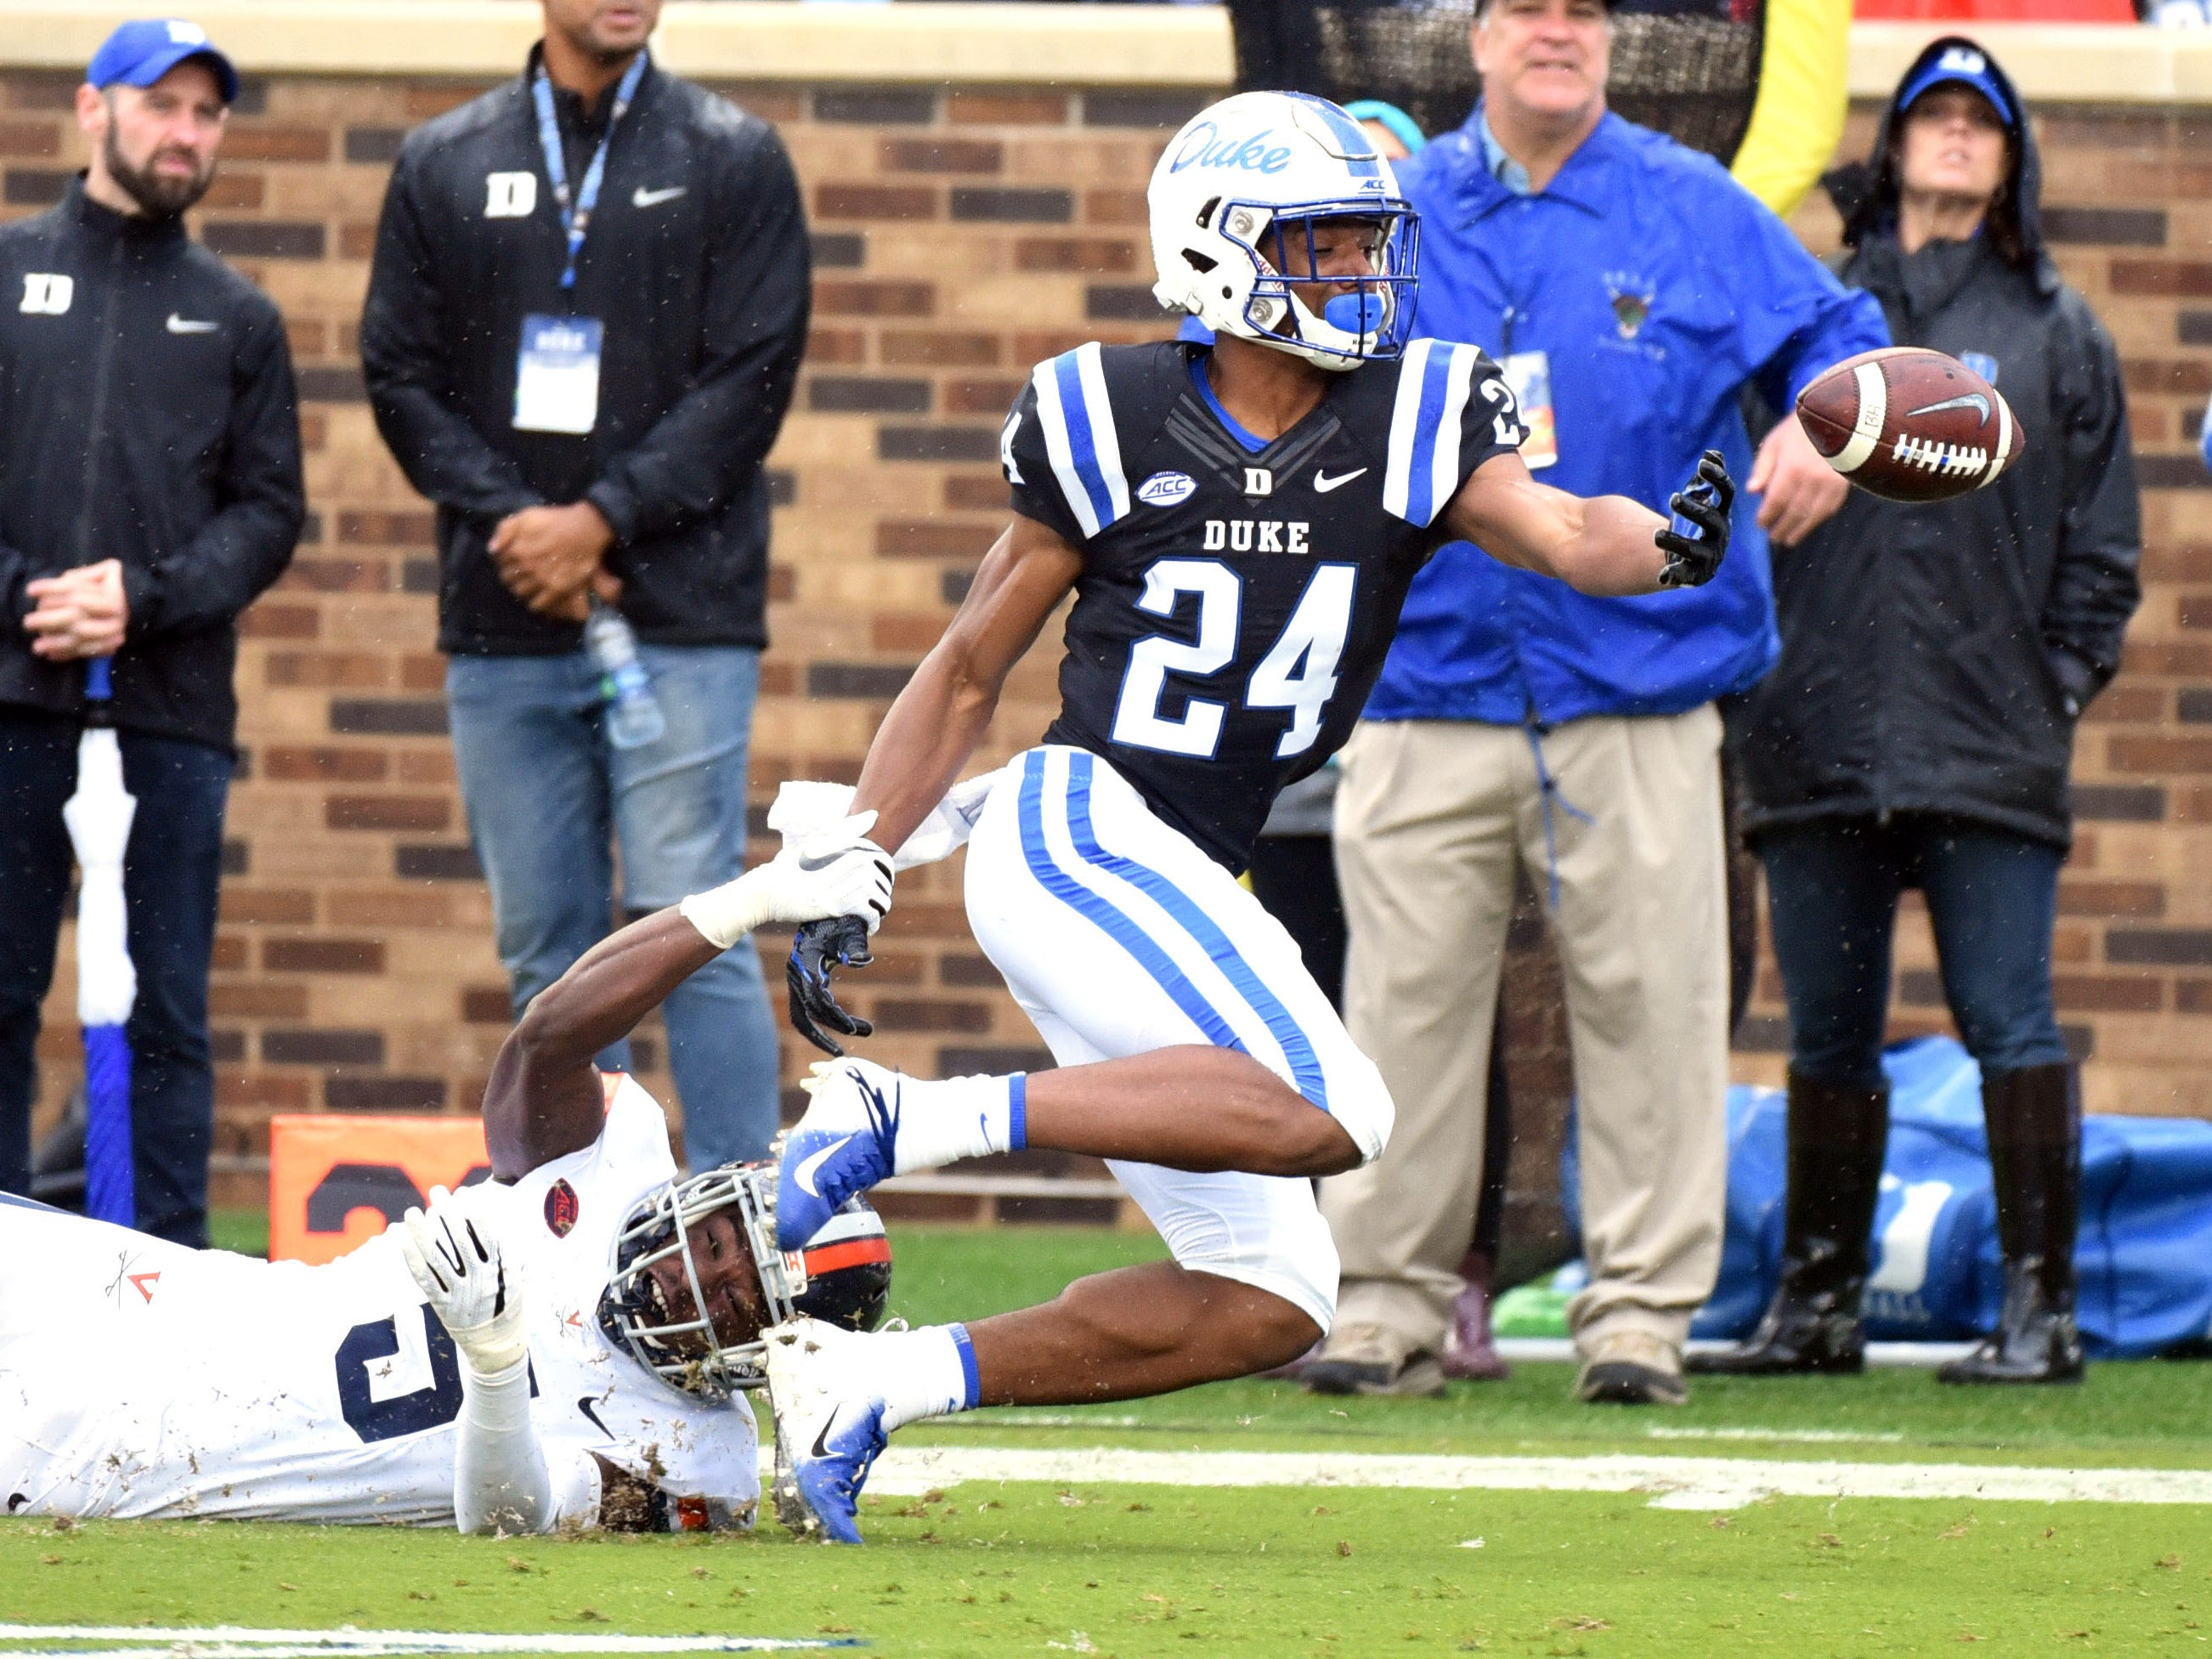 Duke Blue Devils receiver Jarett Garner can't make the catch against Virginia in the first half.